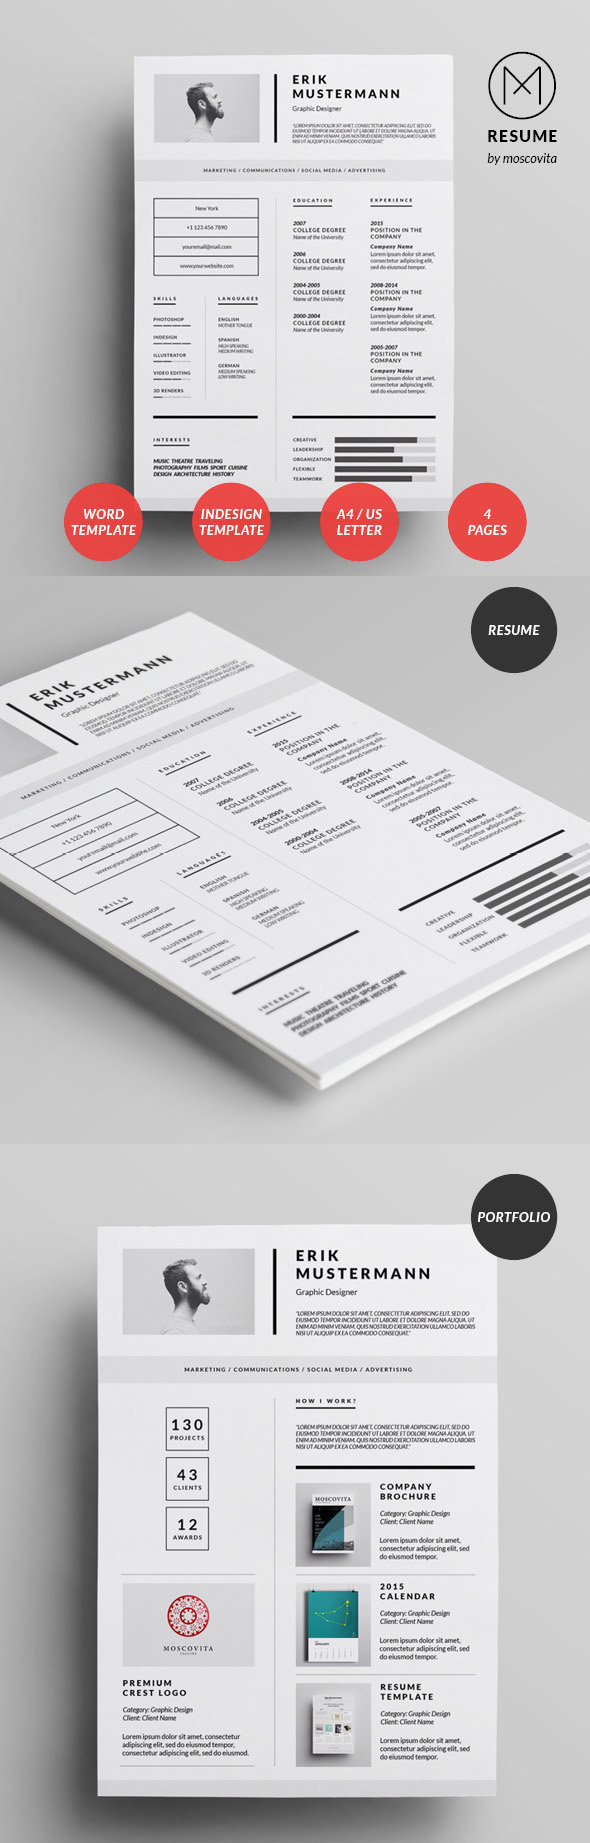 creative modern resume design - Graphic Design Resume Template